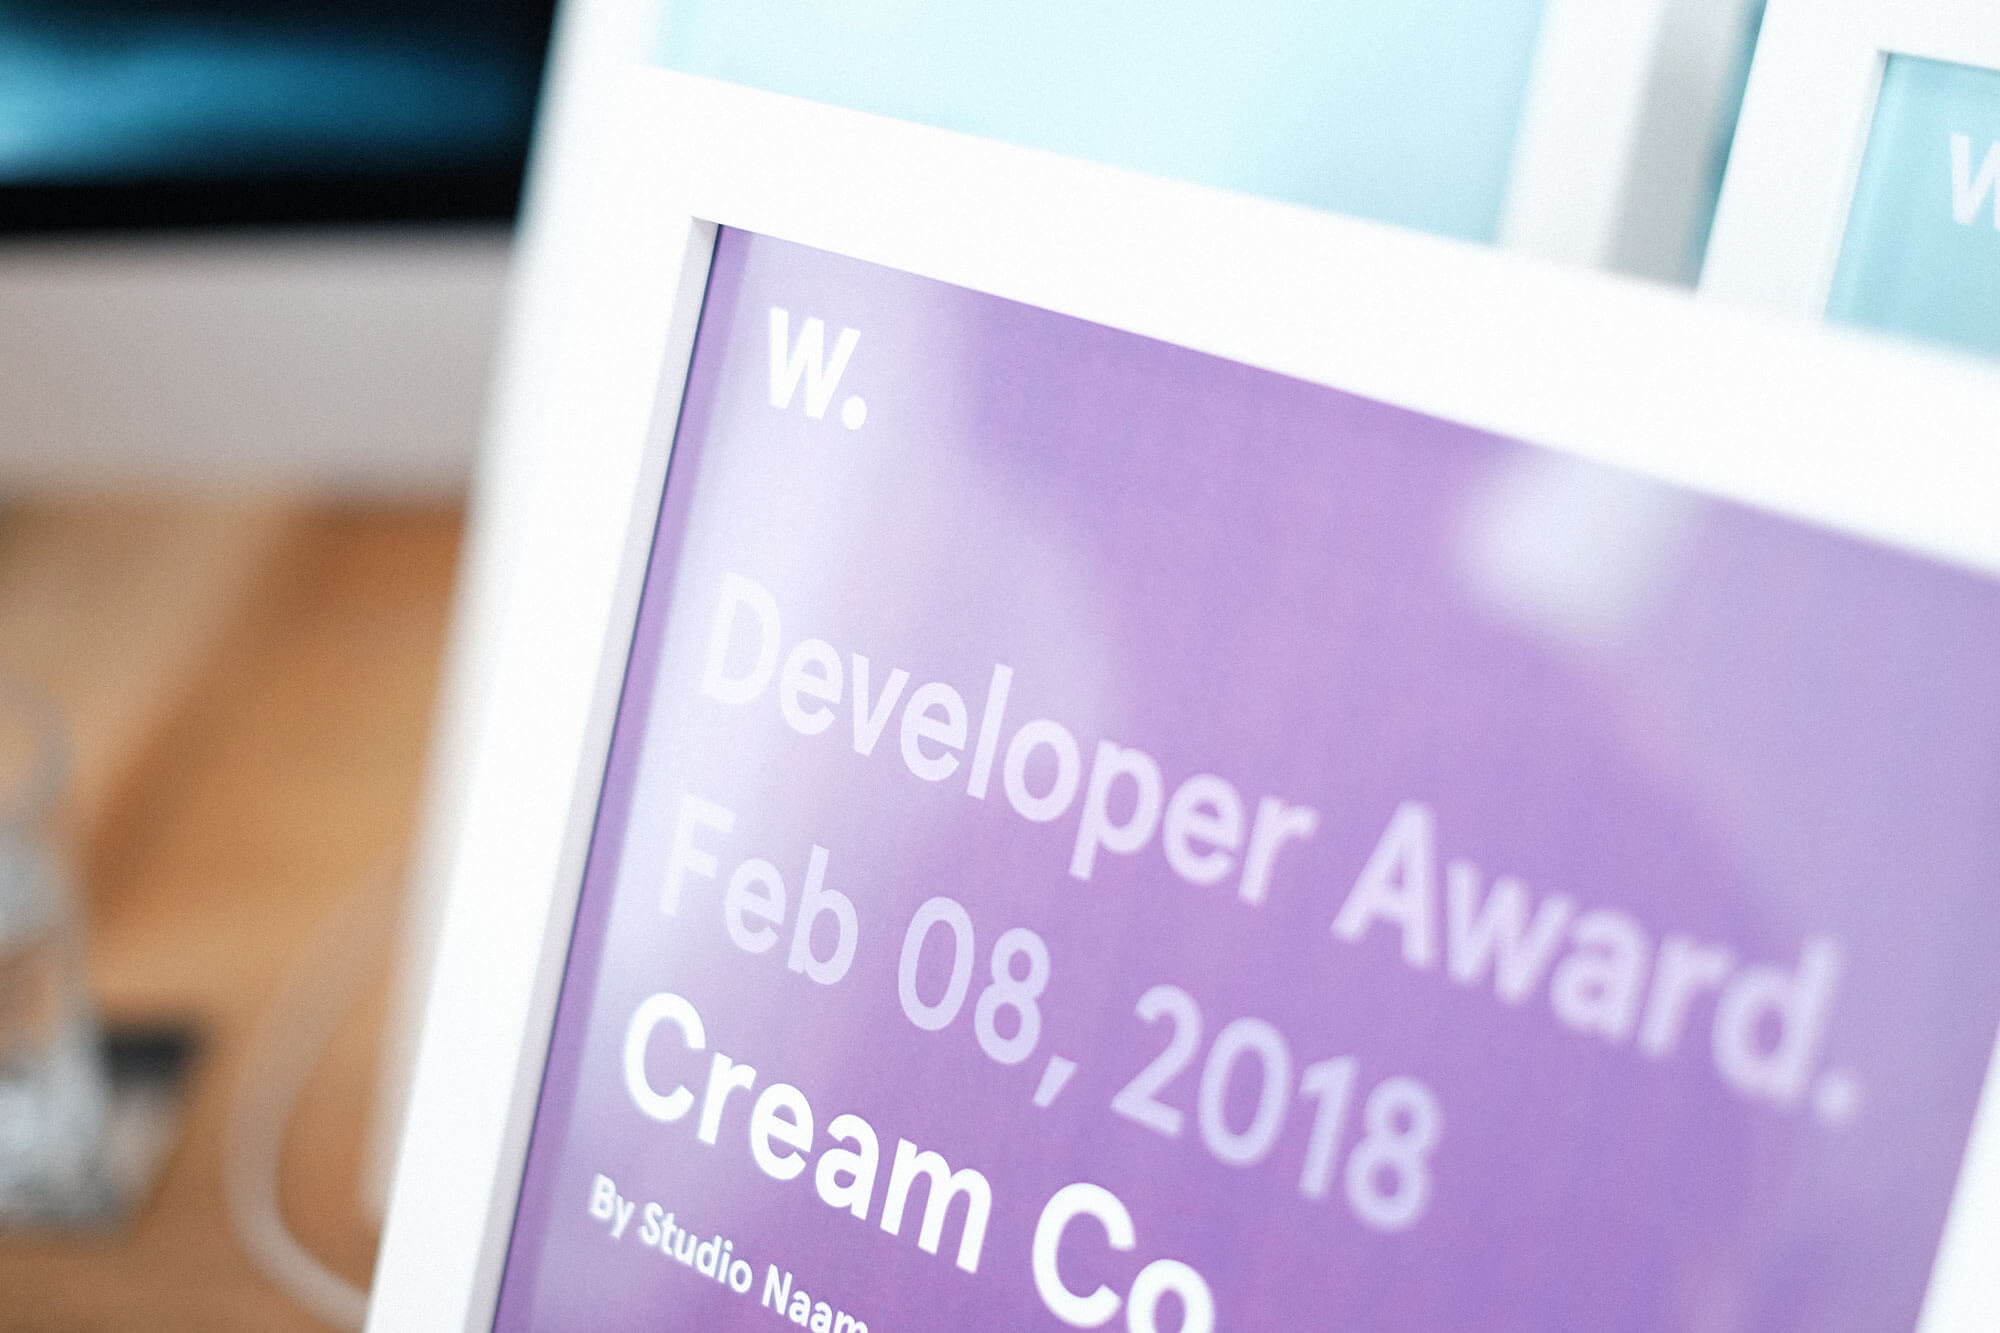 Developer award by Awwwards for Cream Co. webdesign